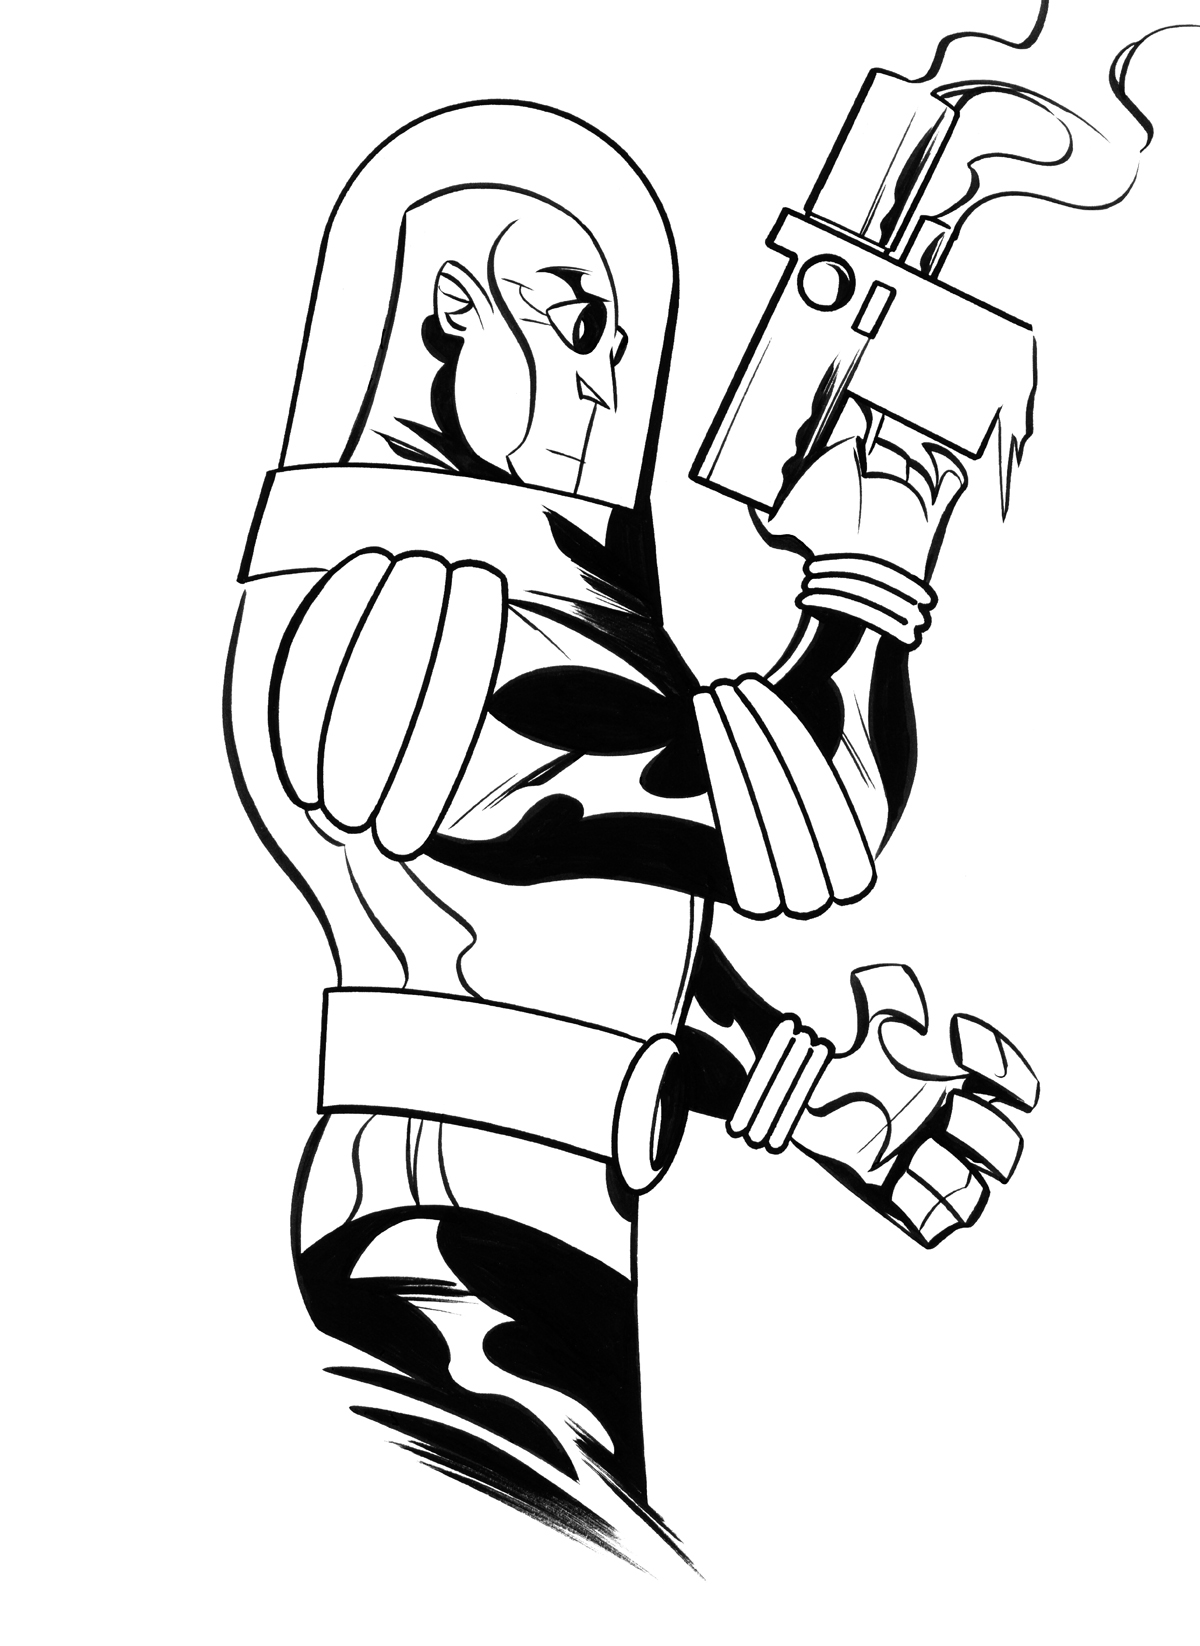 Coloring Pages Mr Freeze Coloring Pages mr freeze by dfridolfs on deviantart dfridolfs